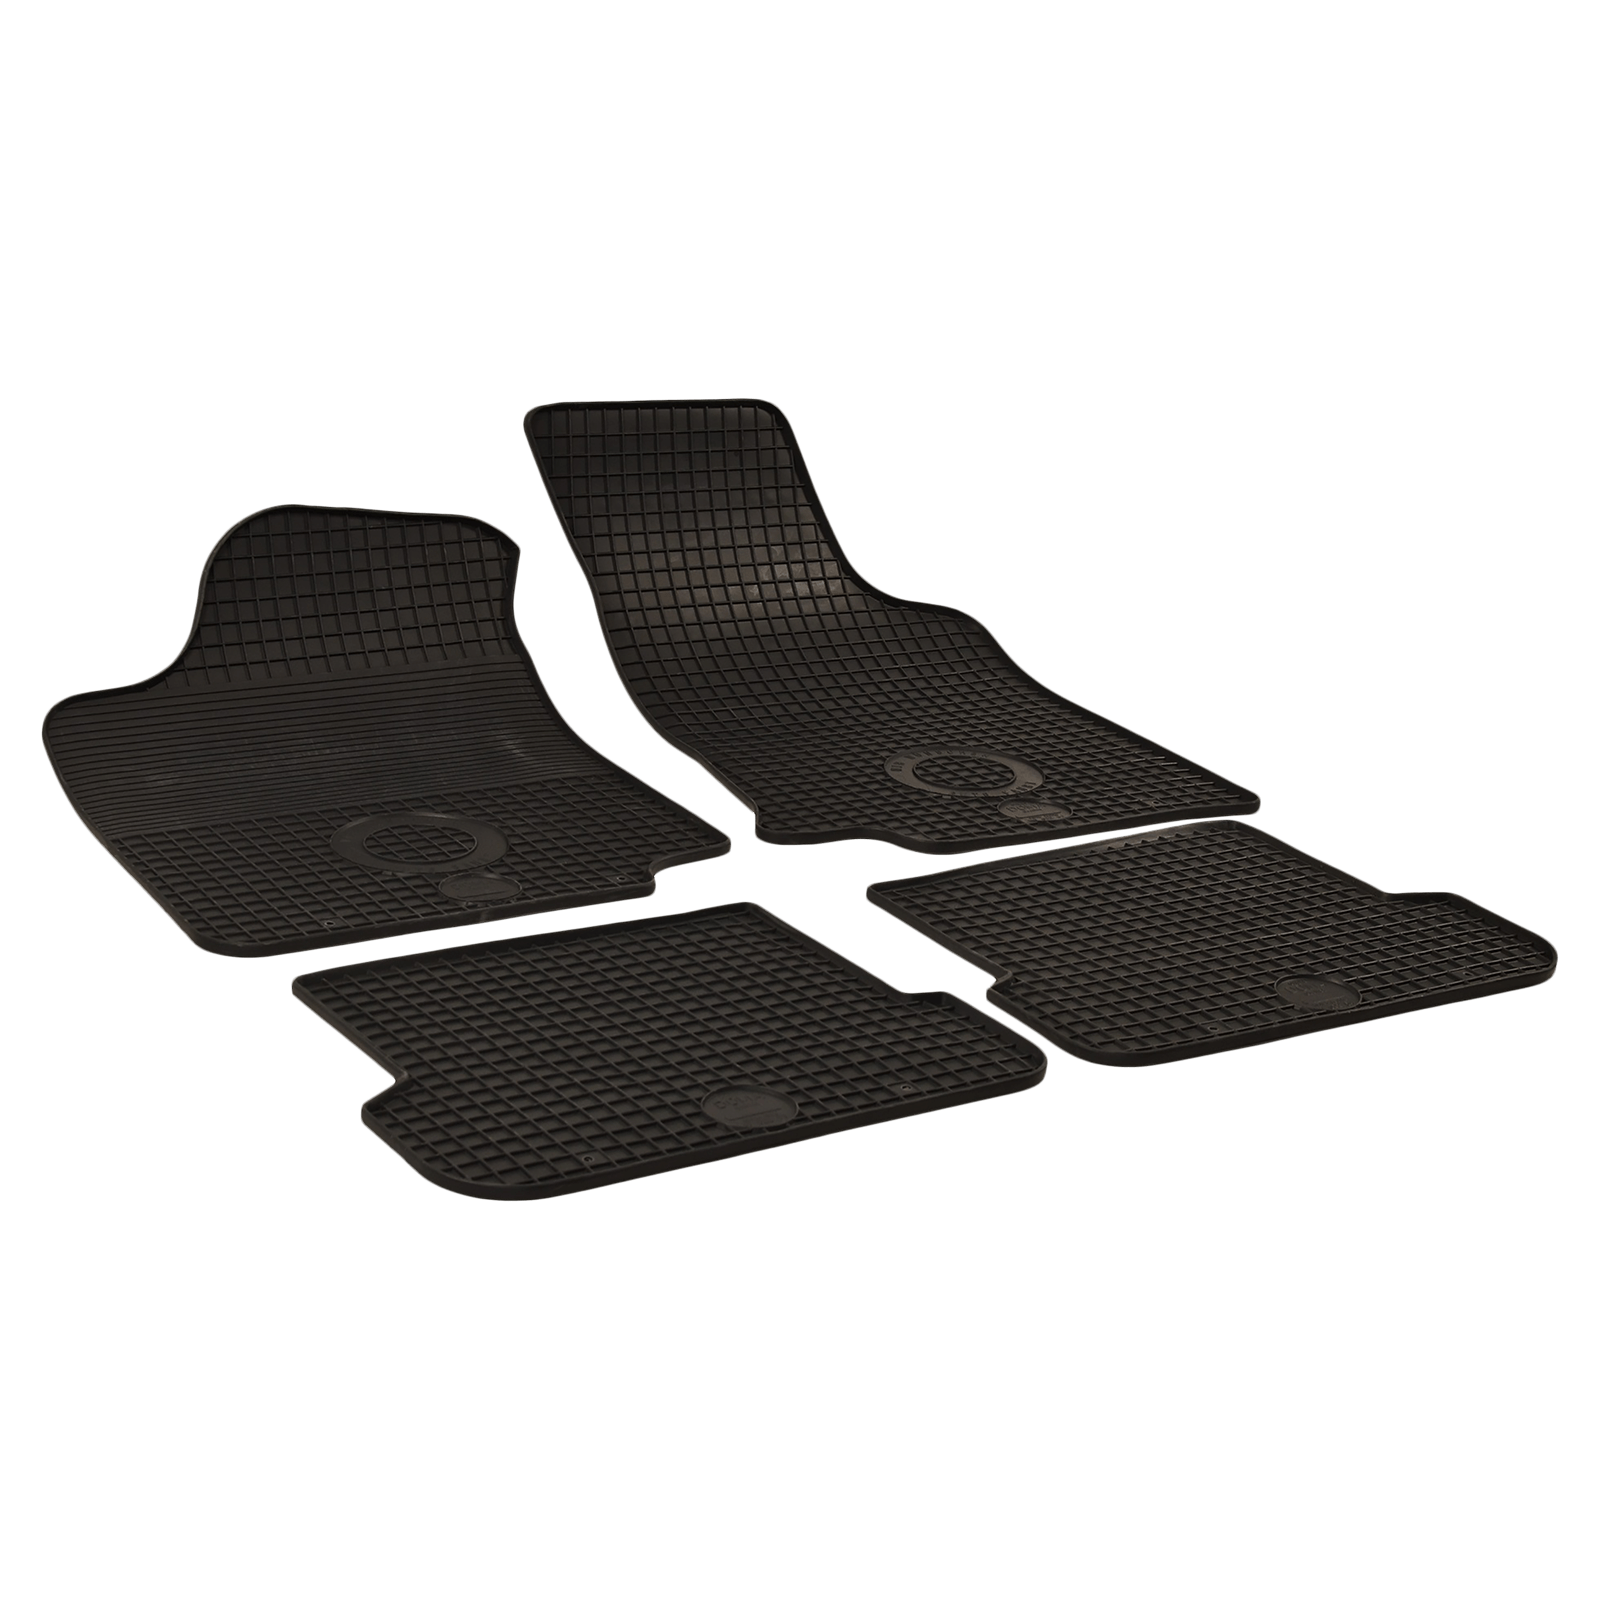 tapis de sol en caoutchouc anthracite pour vw golf iii. Black Bedroom Furniture Sets. Home Design Ideas